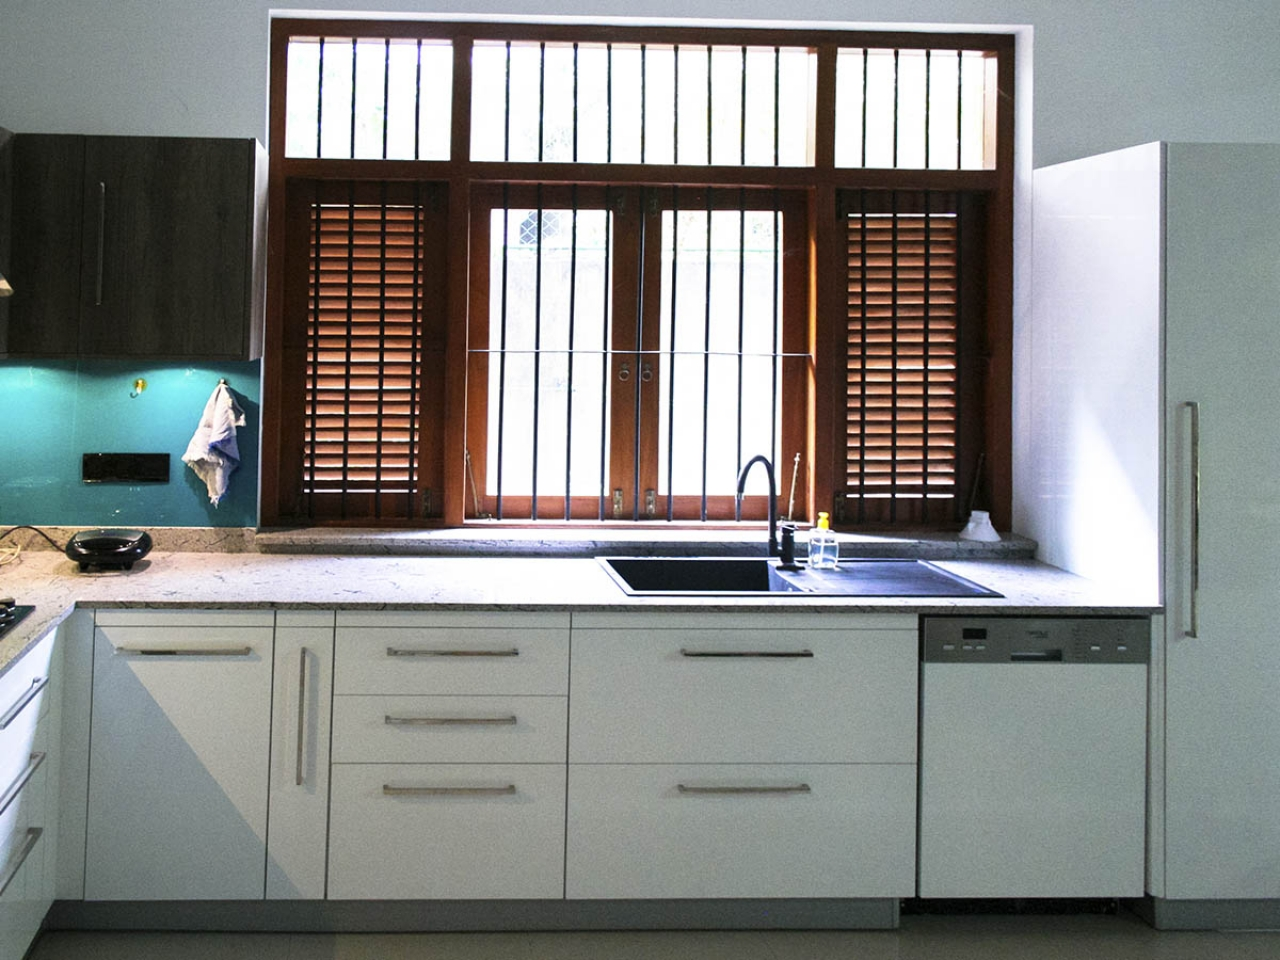 Kitchen Design Ideas In Sri Lanka pantry cupboards sri lanka - hybrid kitchen portfolio